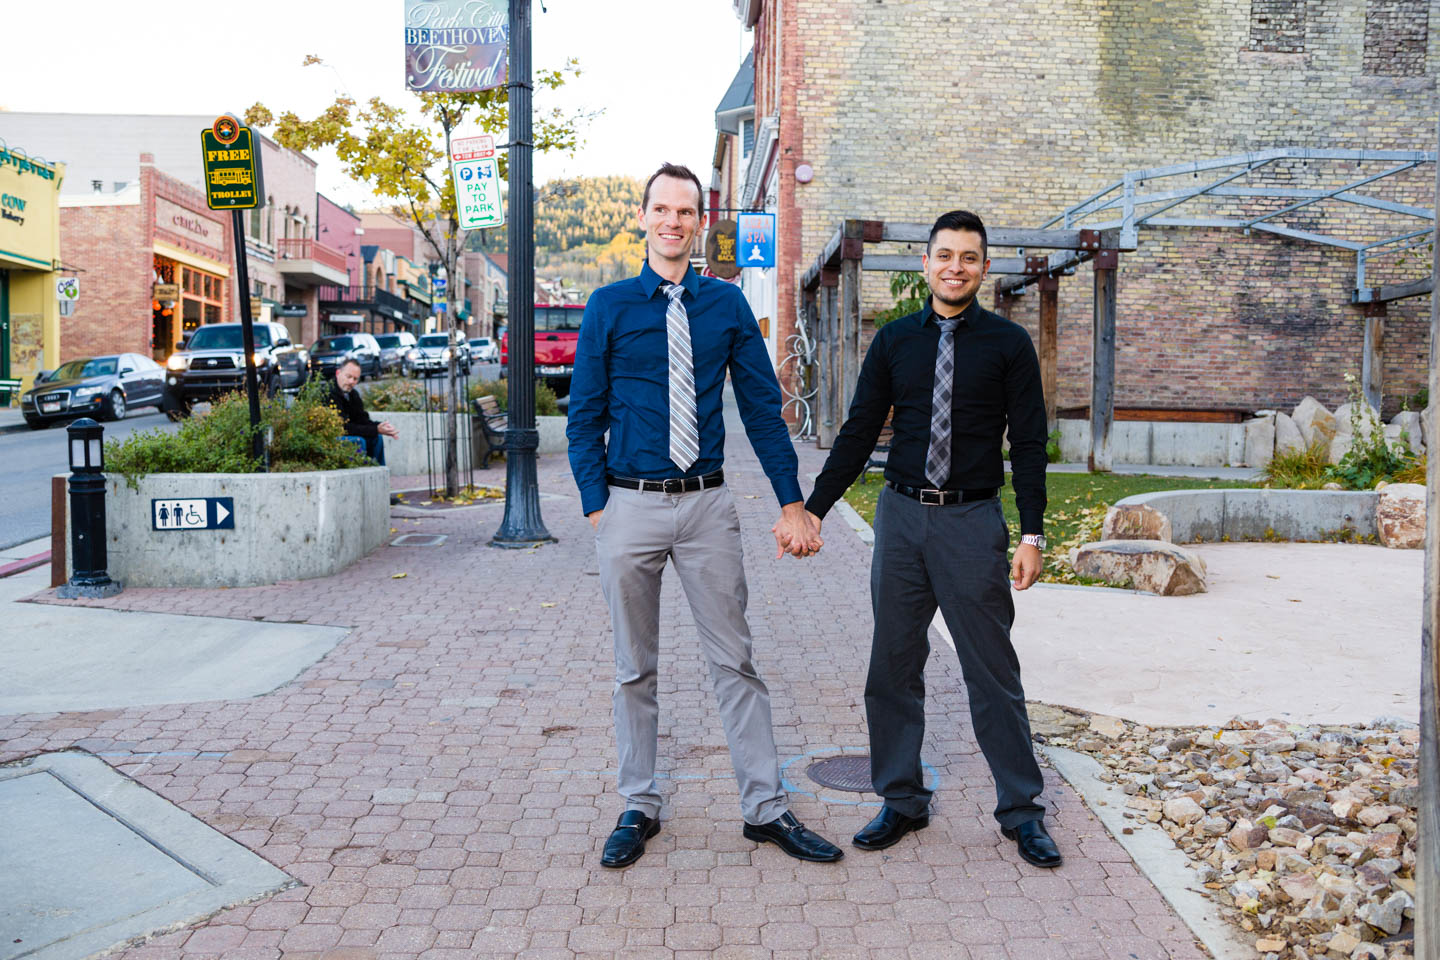 Park City's Main Street is awesome for engagement or portrait photography.